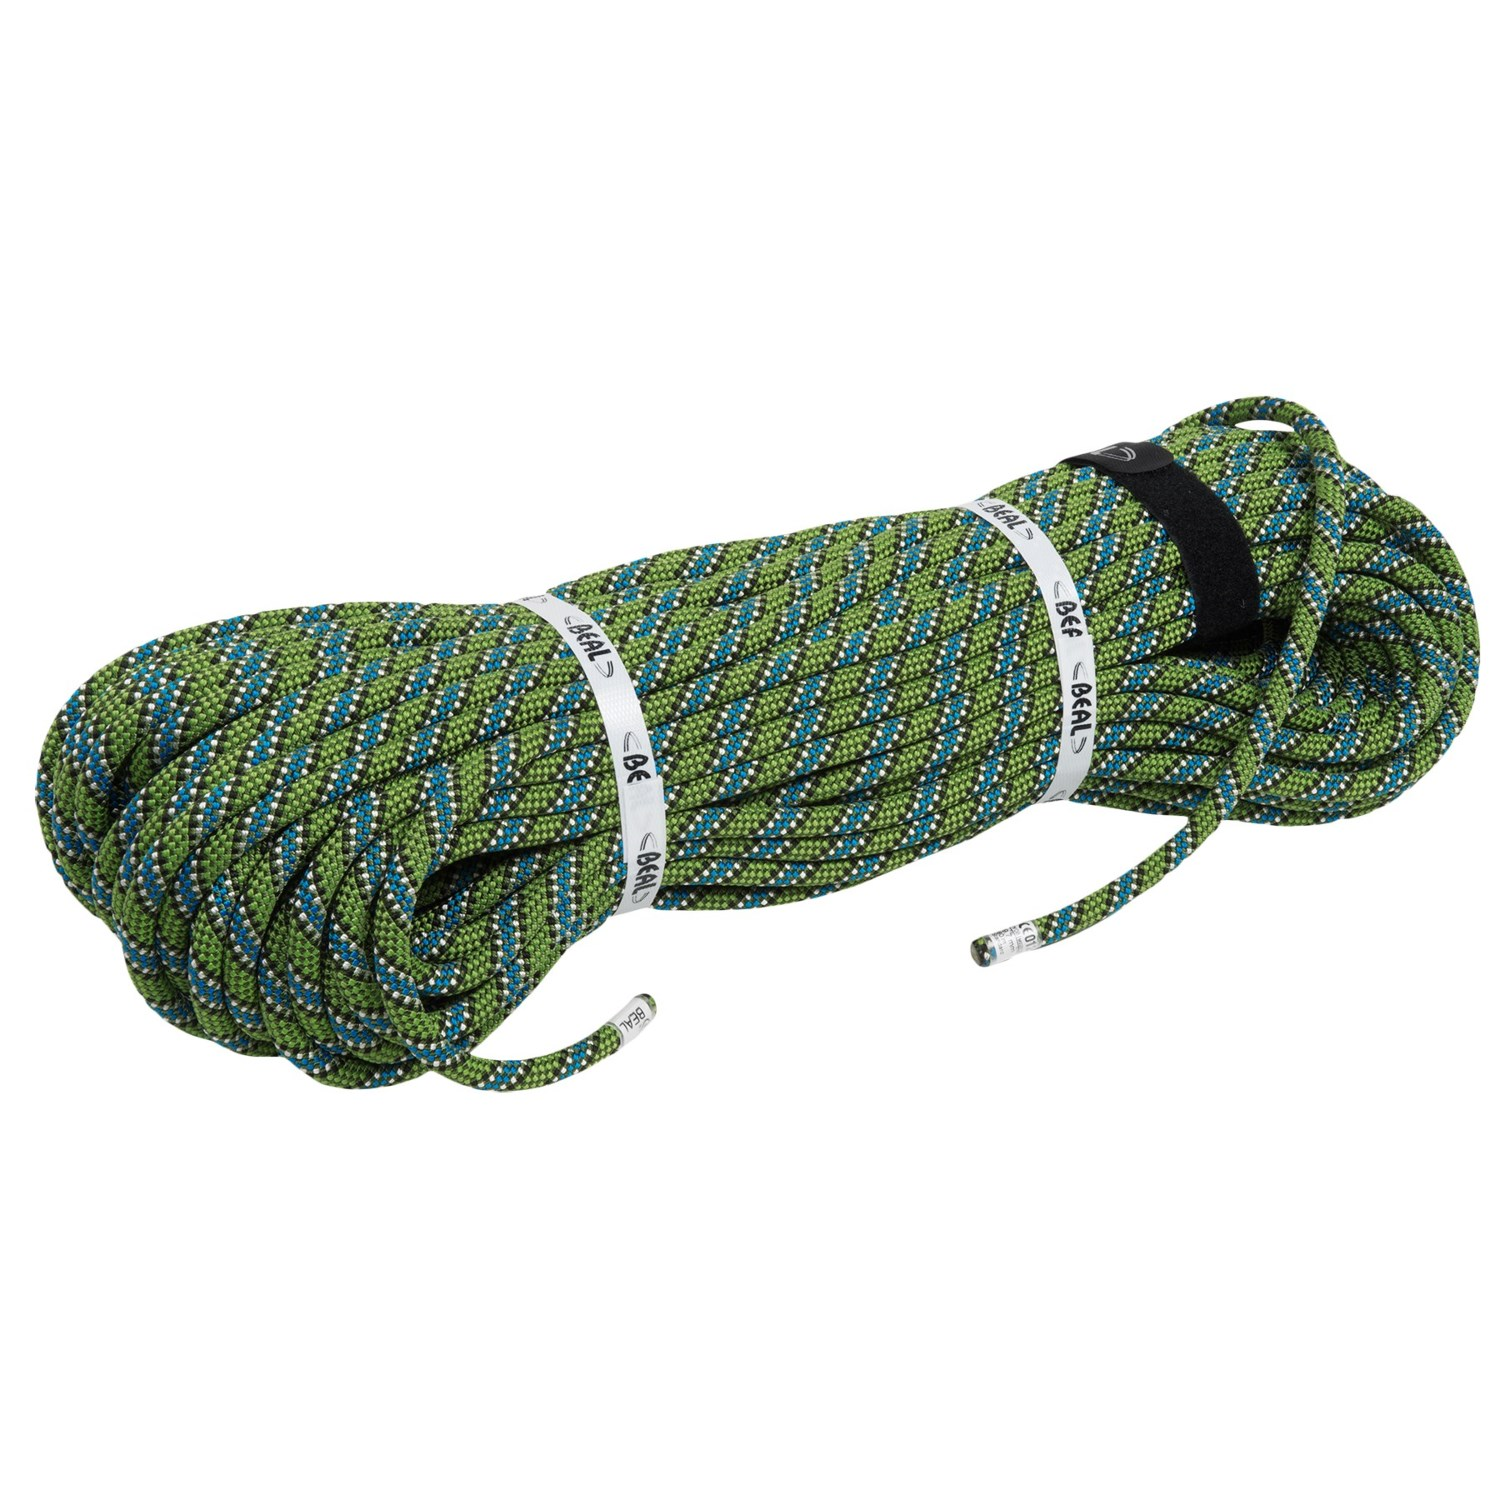 How to Coil a Climbing Rope picture